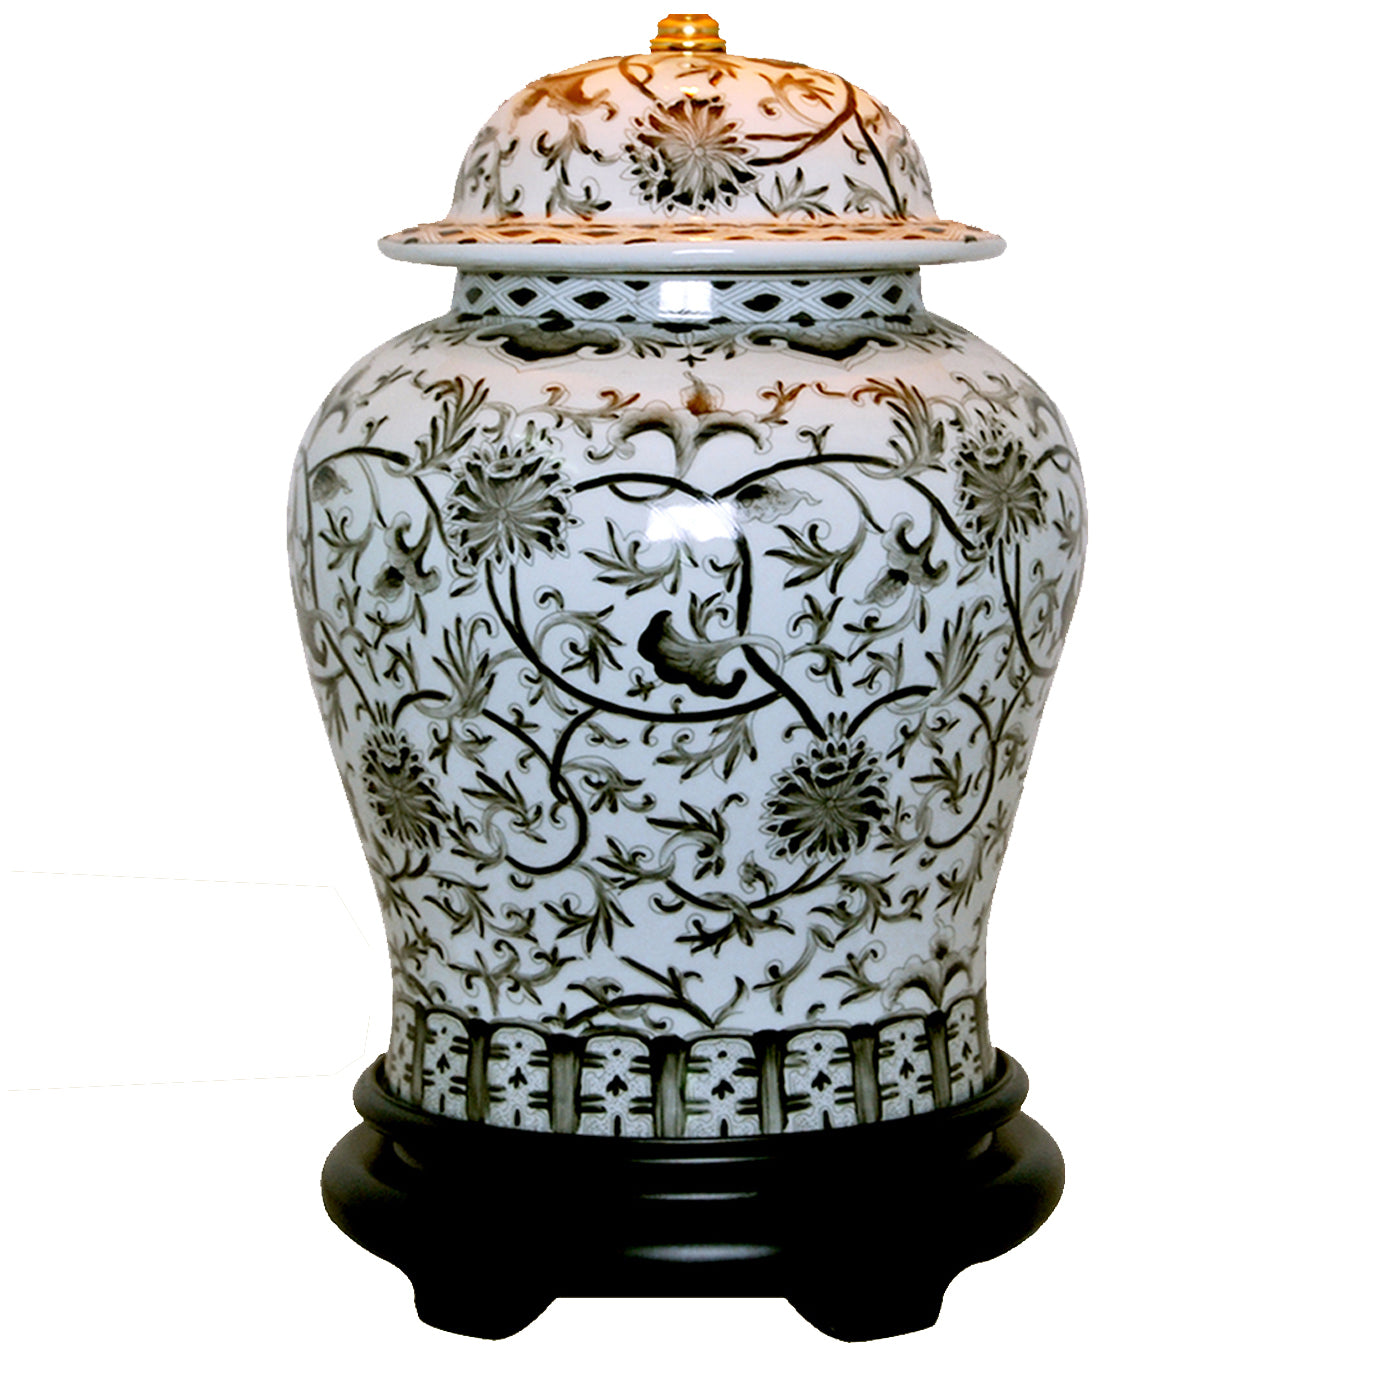 Floral Black & White Temple Jar Porcelain Lamp